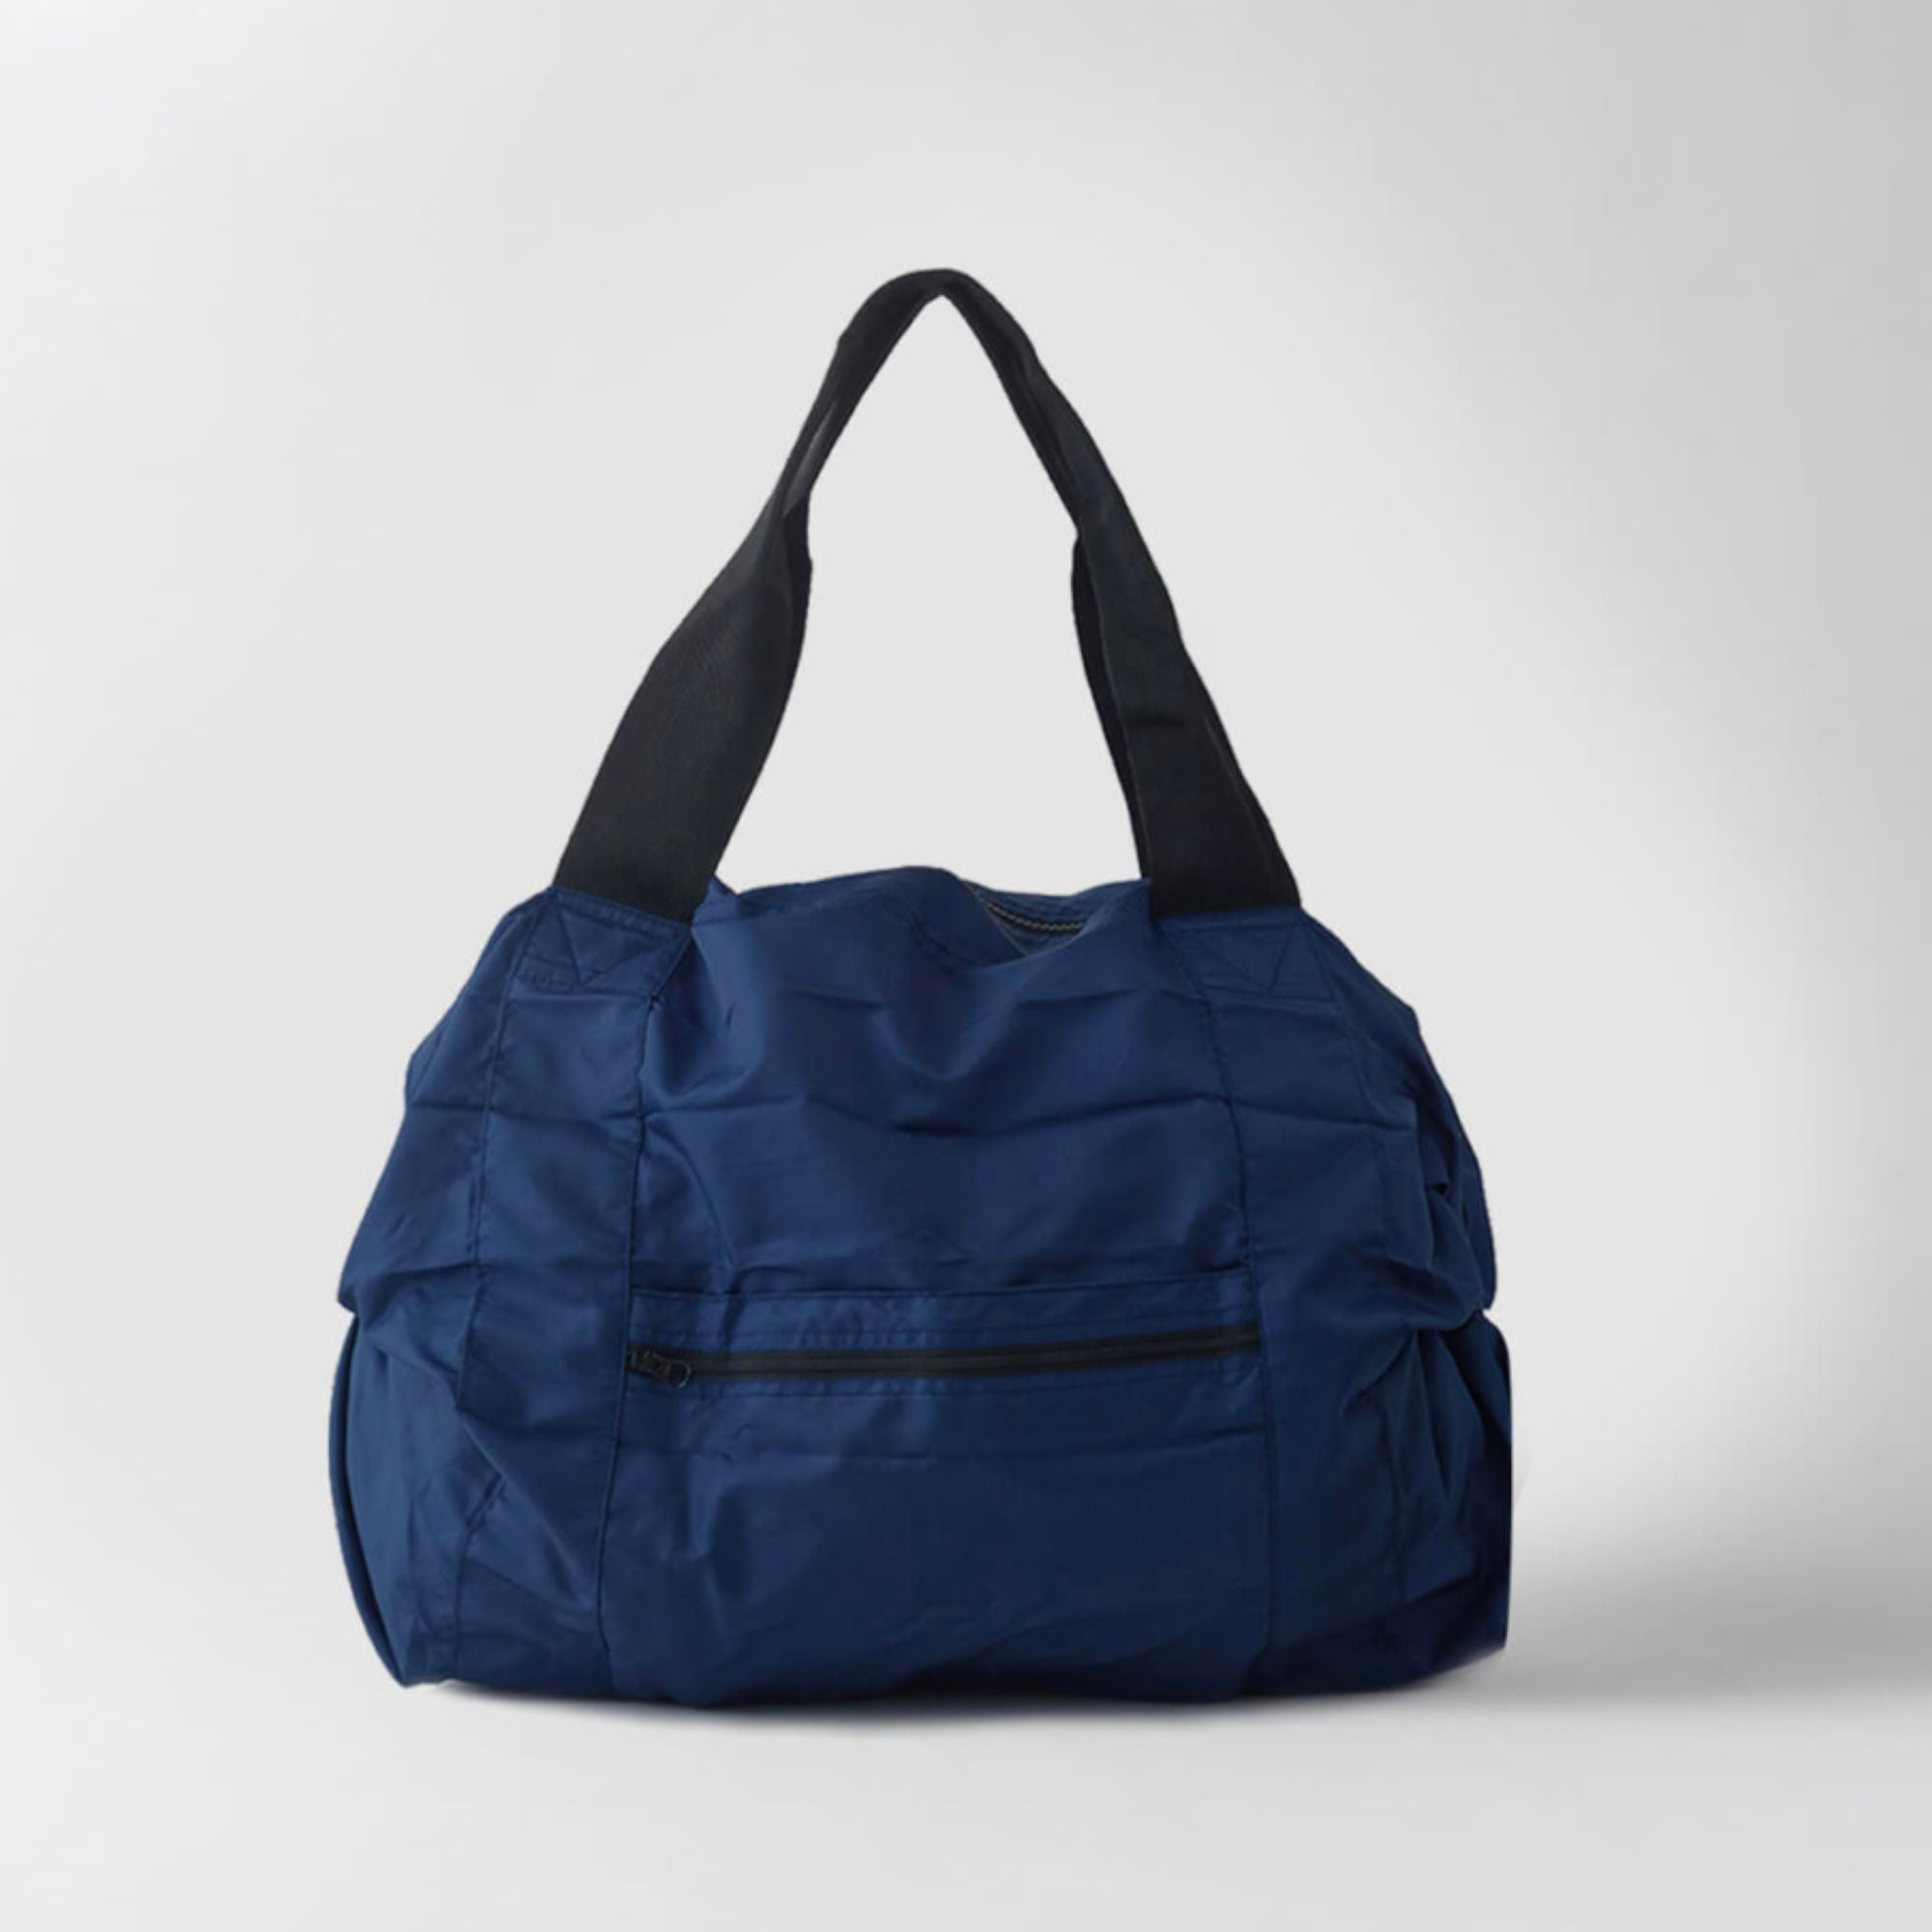 Marna Shupatto Travel Duffel Bag , Navy